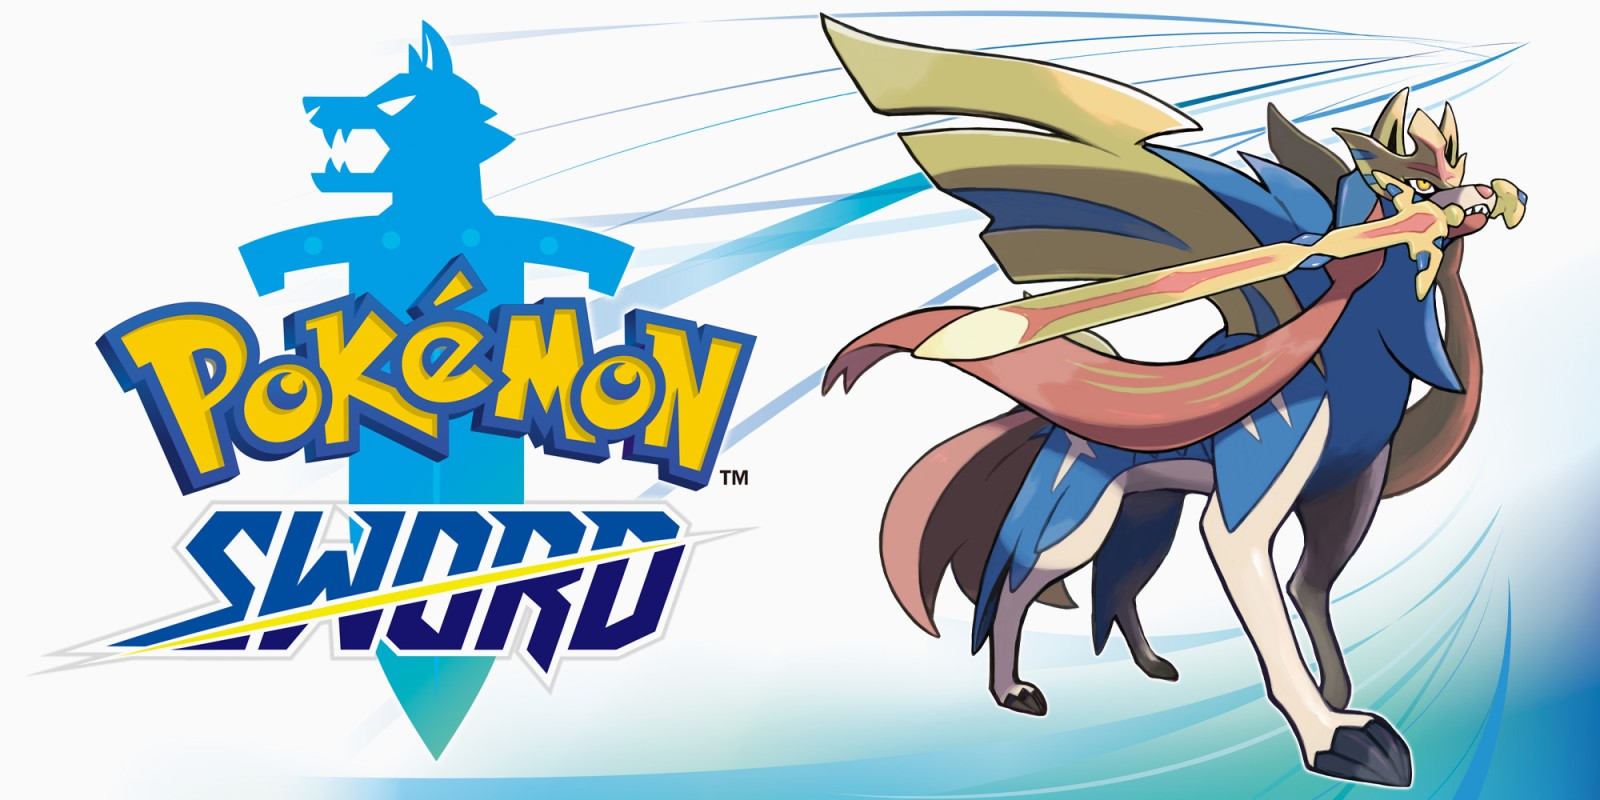 Last Game You Finished And Your Four-ghts - Page 6 H2x1_NSwitch_PokemonSword_enGB_image1600w